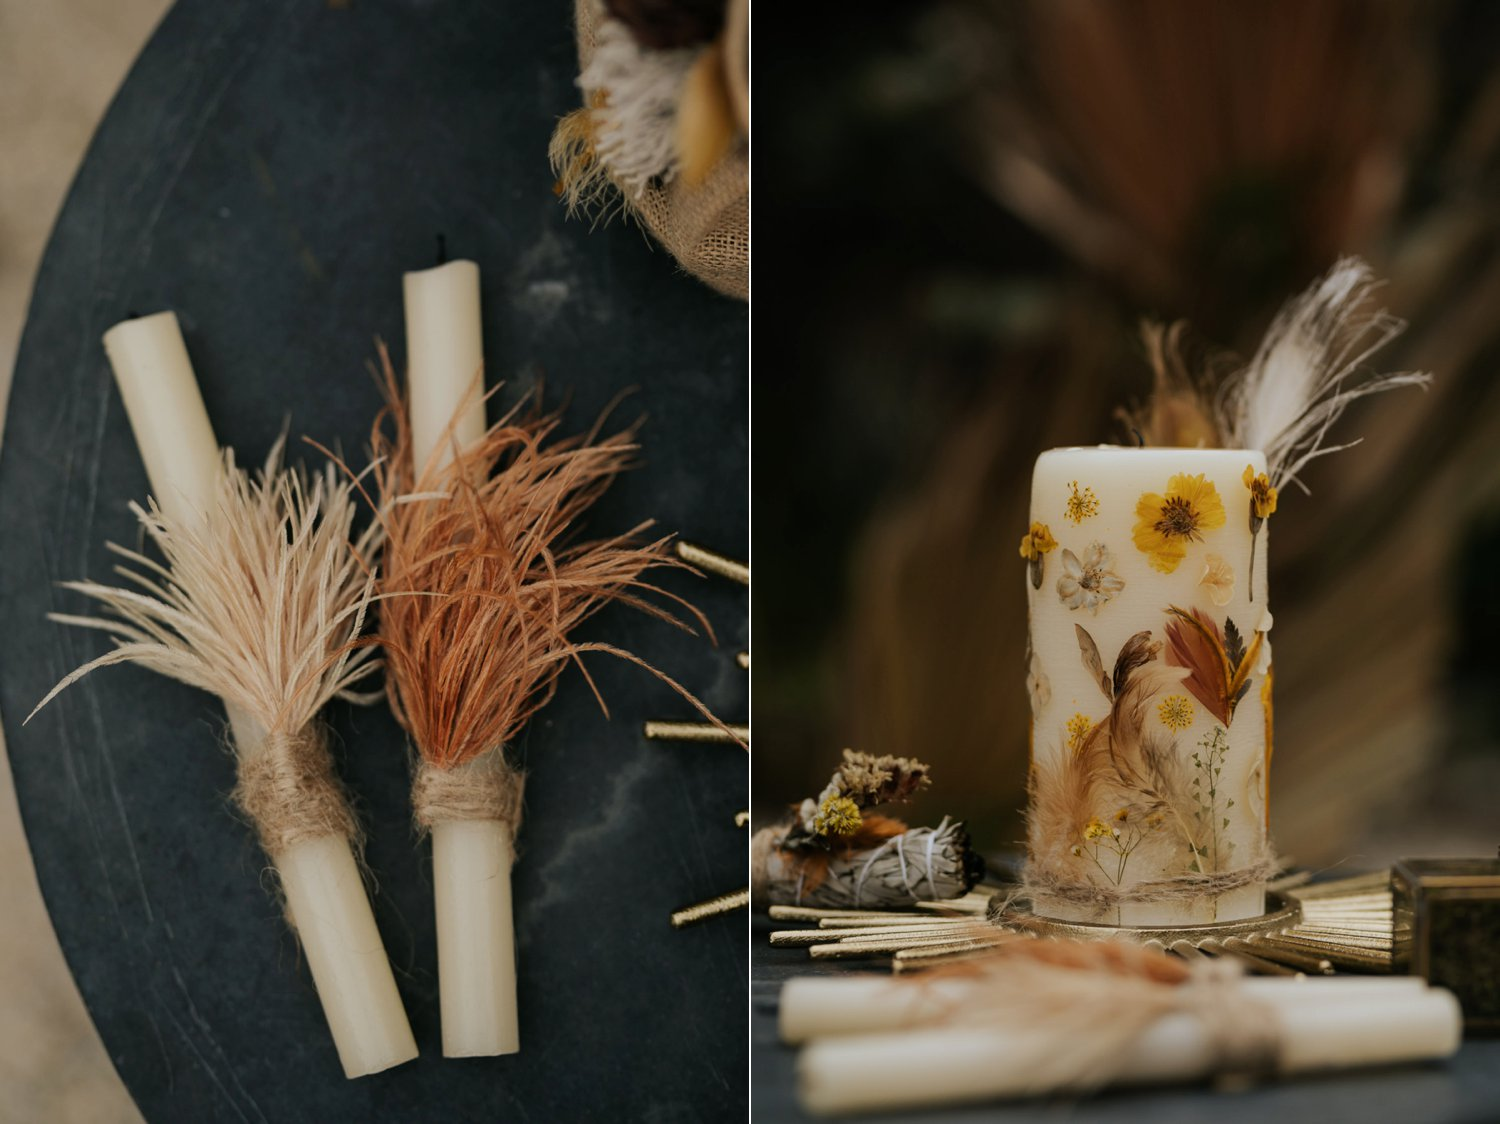 Boho candles with dried flowers and feathers for candle lighting wedding ceremony at Bohemian wedding in Plett near Cape Town